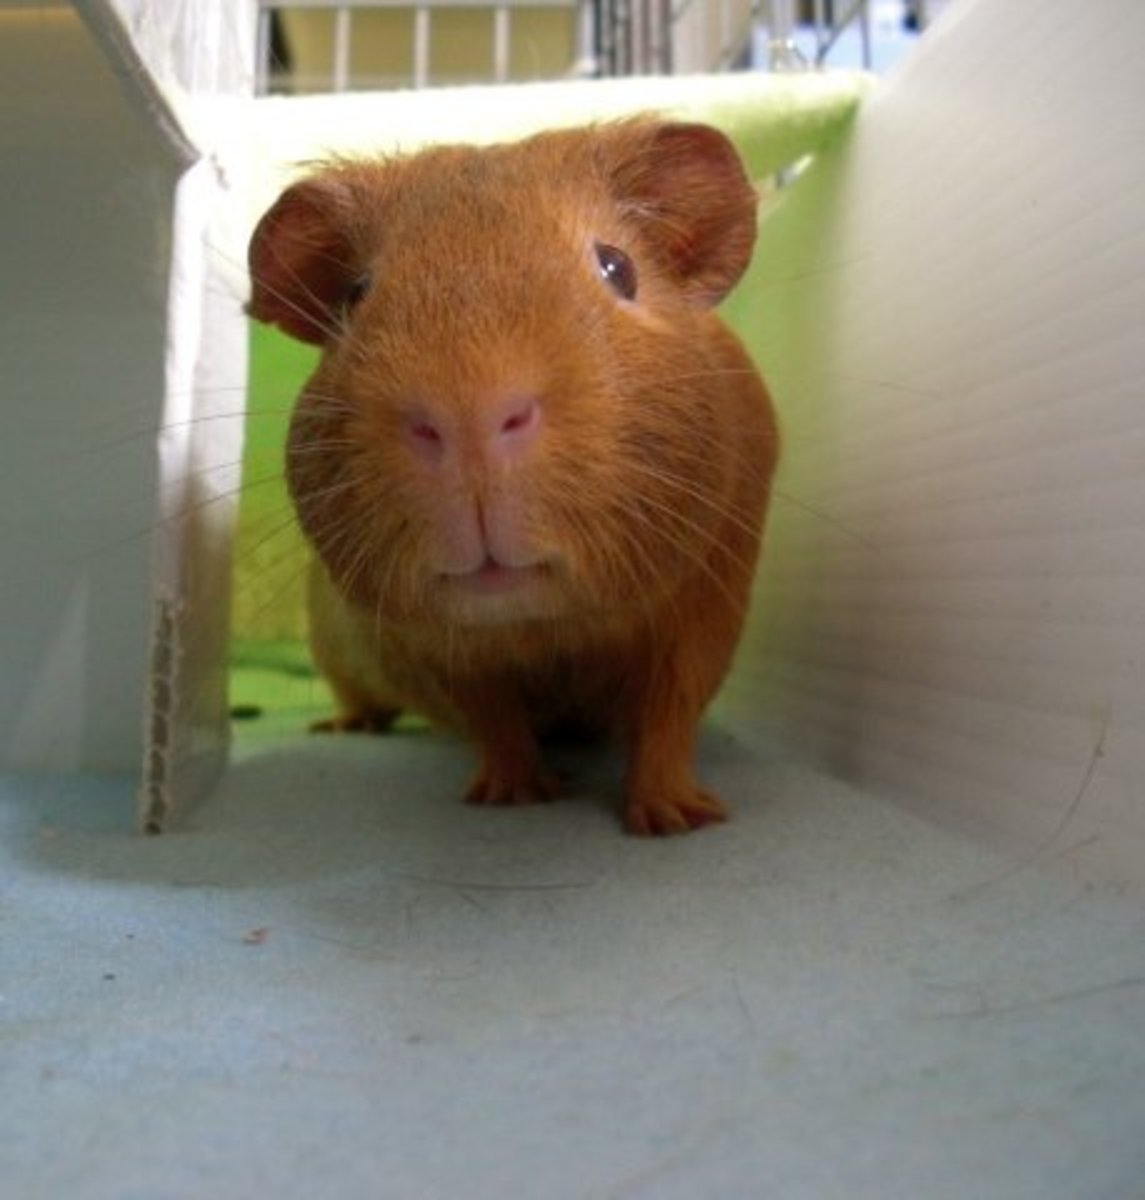 Wilson is very happy to have a nice big cage to roam, as well as soft, dry fleece to lounge around on.